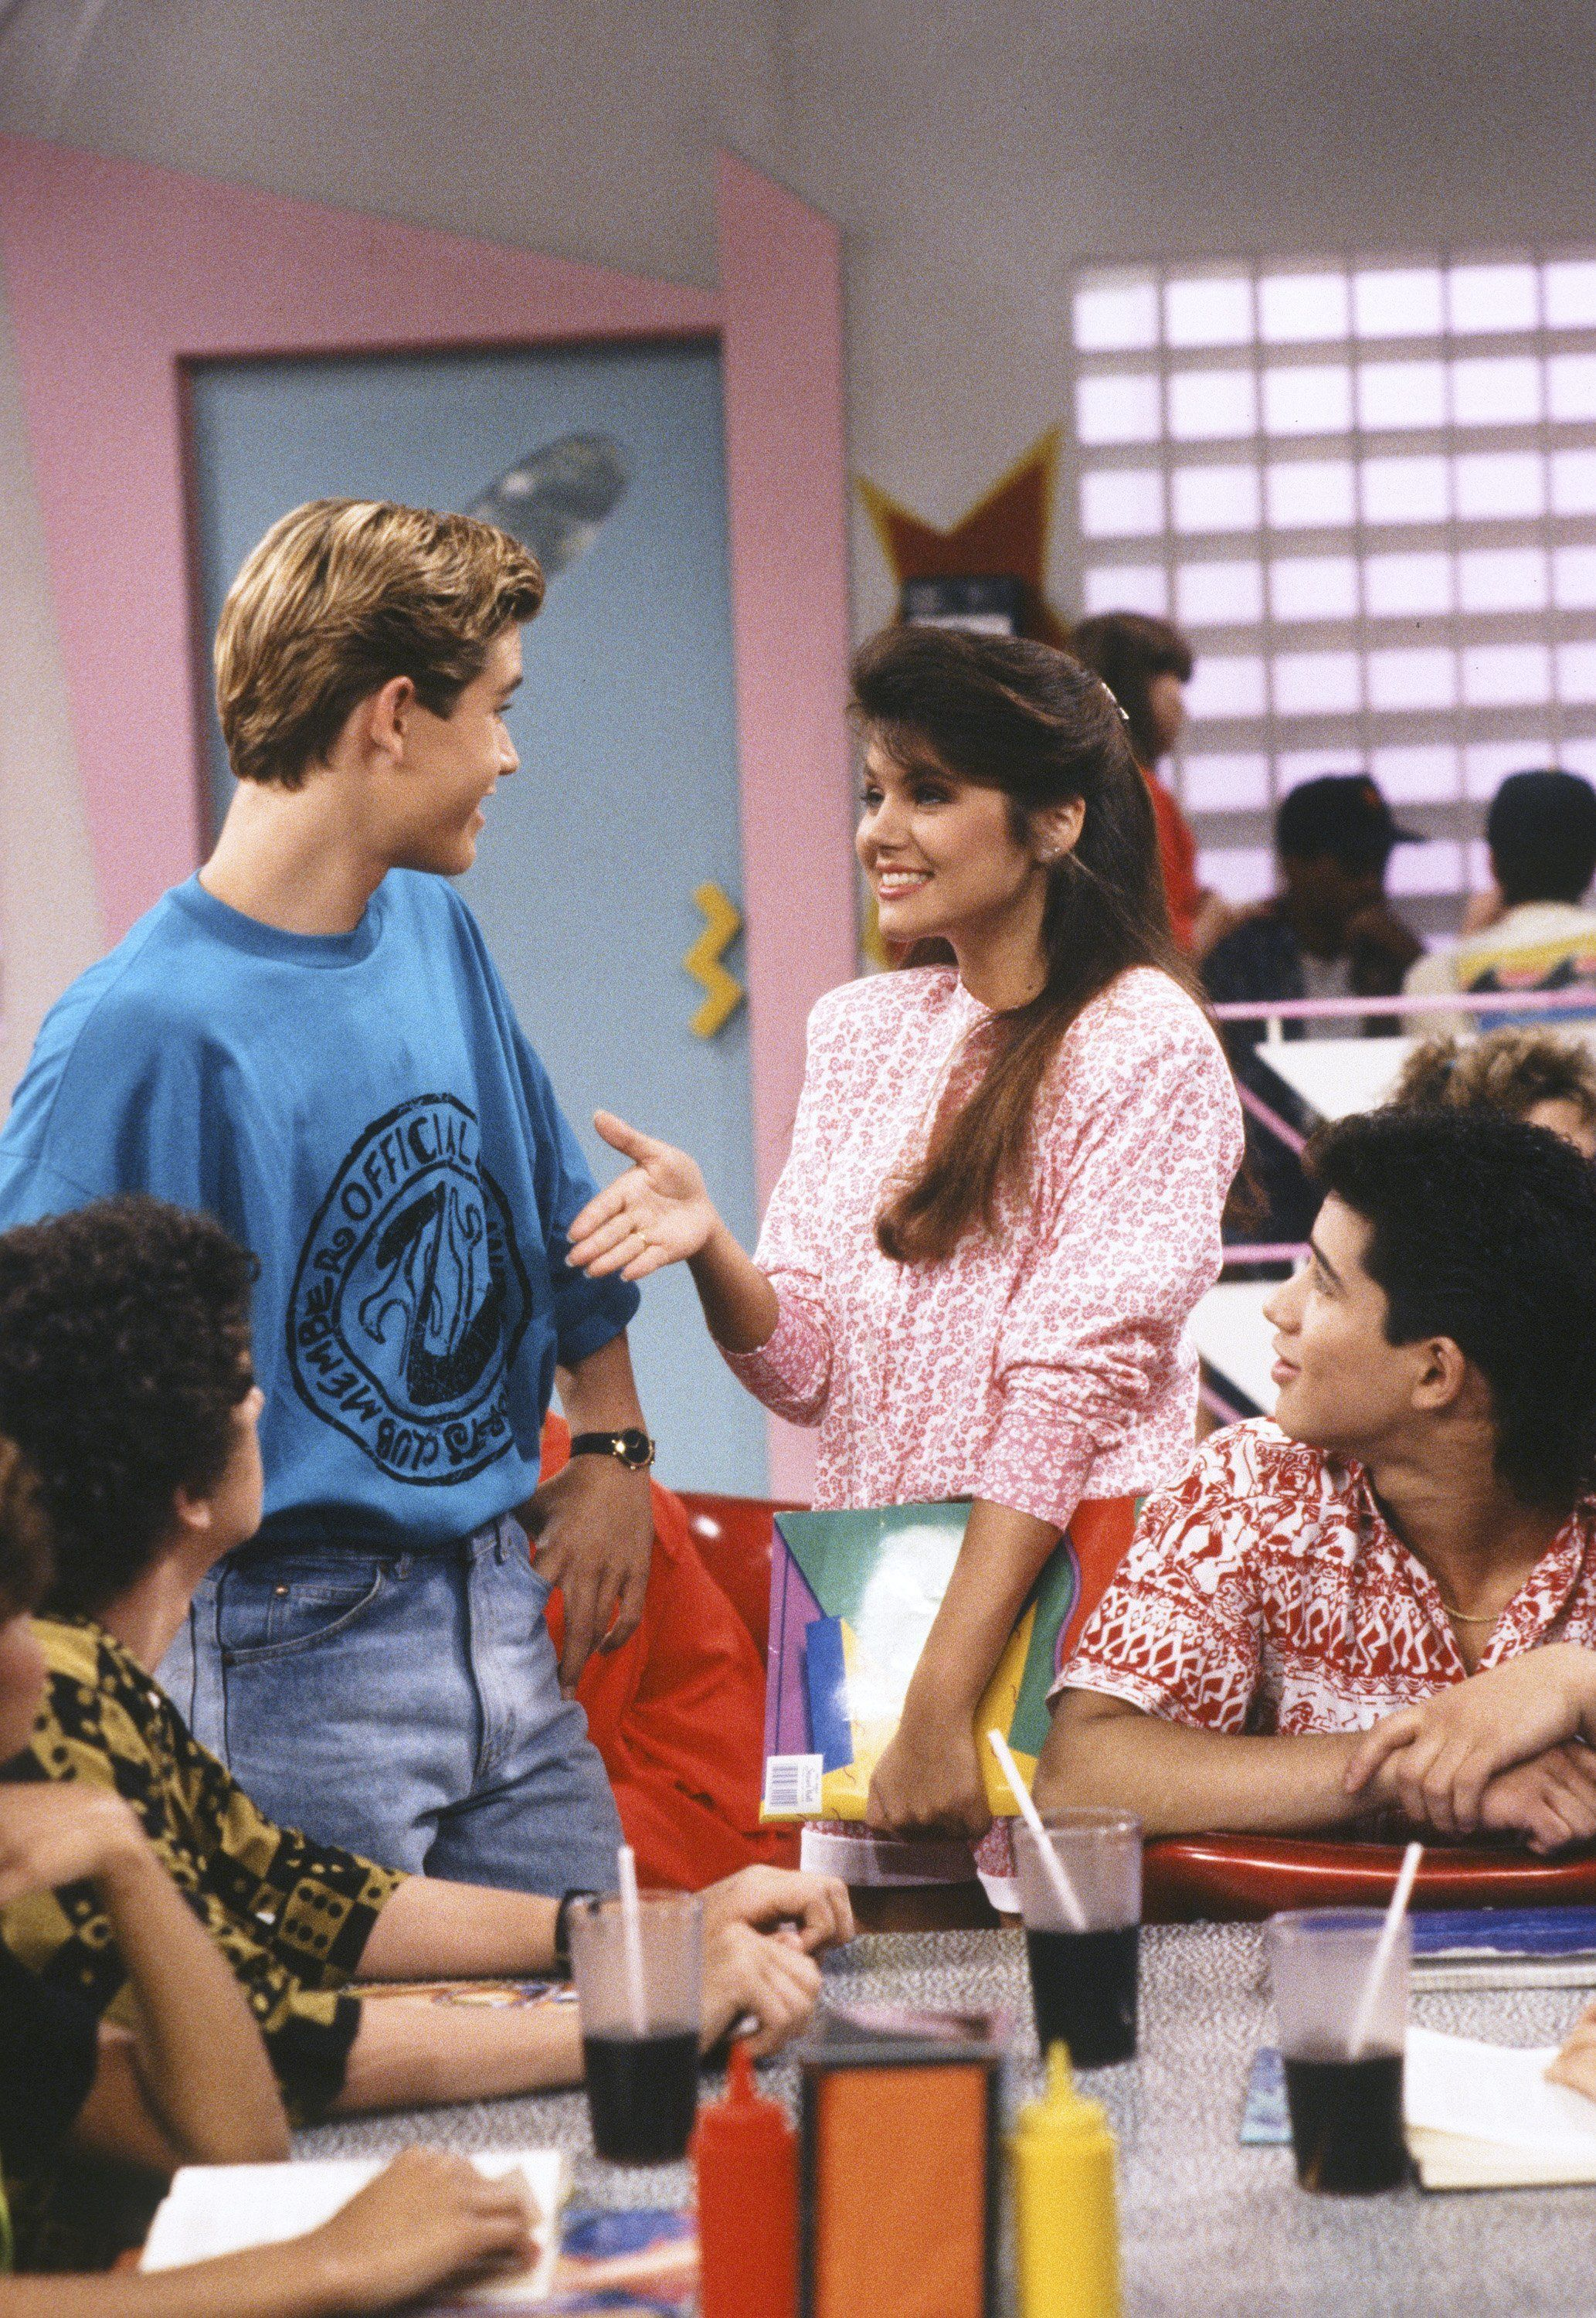 SAVED BY THE BELL -- 'Driver's Education' Episode 4 --  Air Date 09/29/1990 -- Pictured: (l-r) Mark-Paul Gosselaar as Zack Morris,  Tiffani Thiessen as Kelly Kapowski, Mario Lopez as A.C. Slater-- Photo by: Alice S. Hall/NBCU Photo Bank